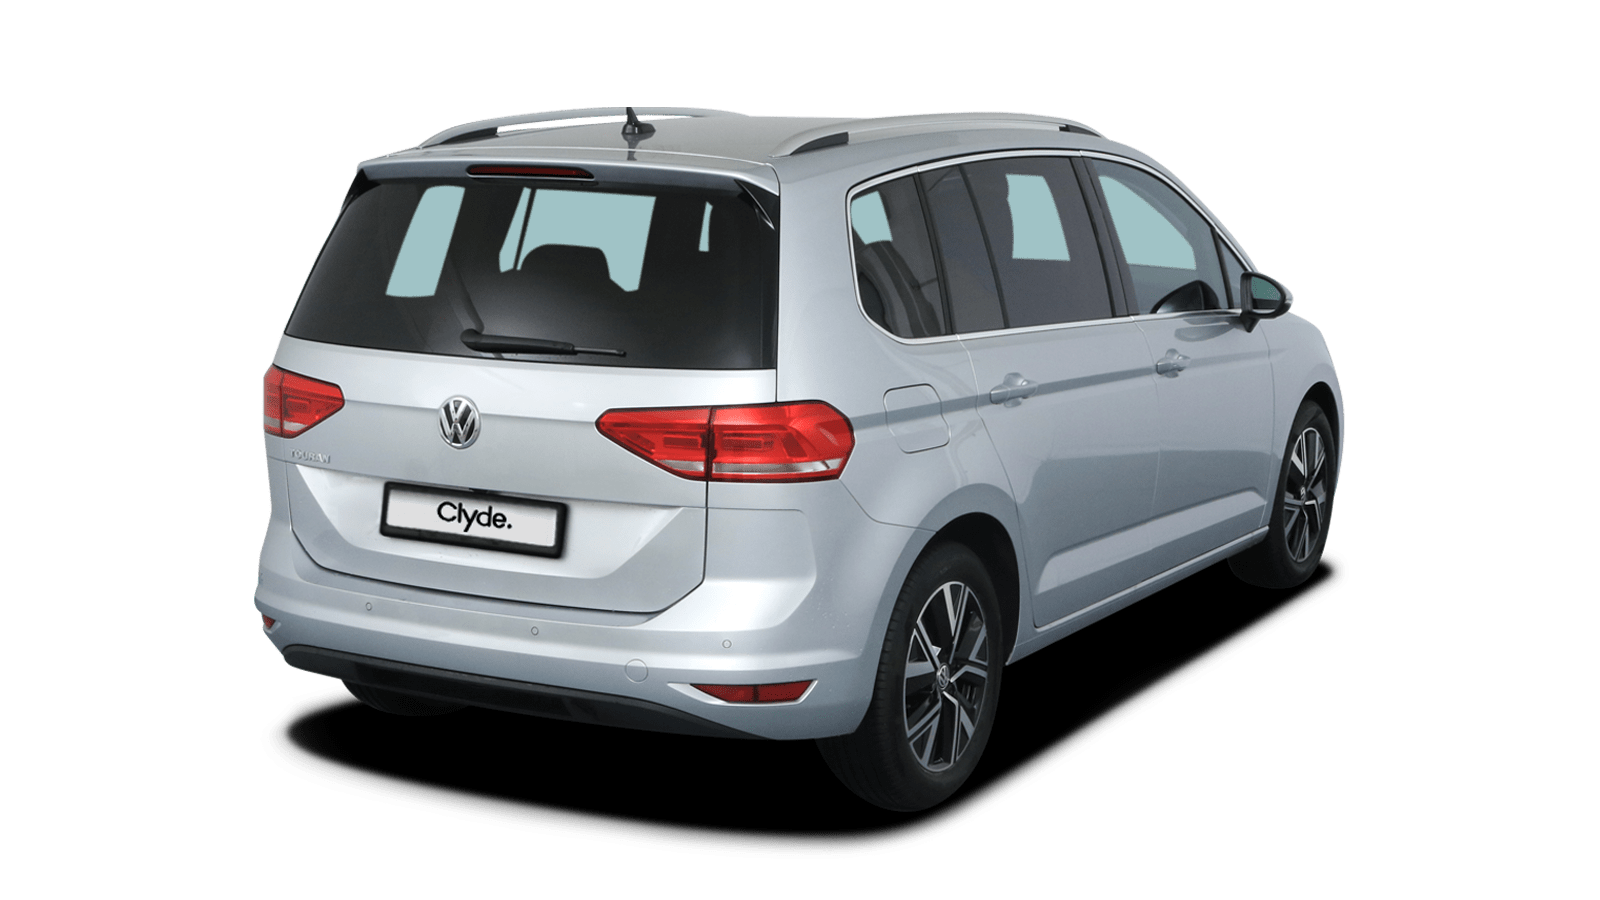 VW Touran Silber front - Clyde Auto-Abo